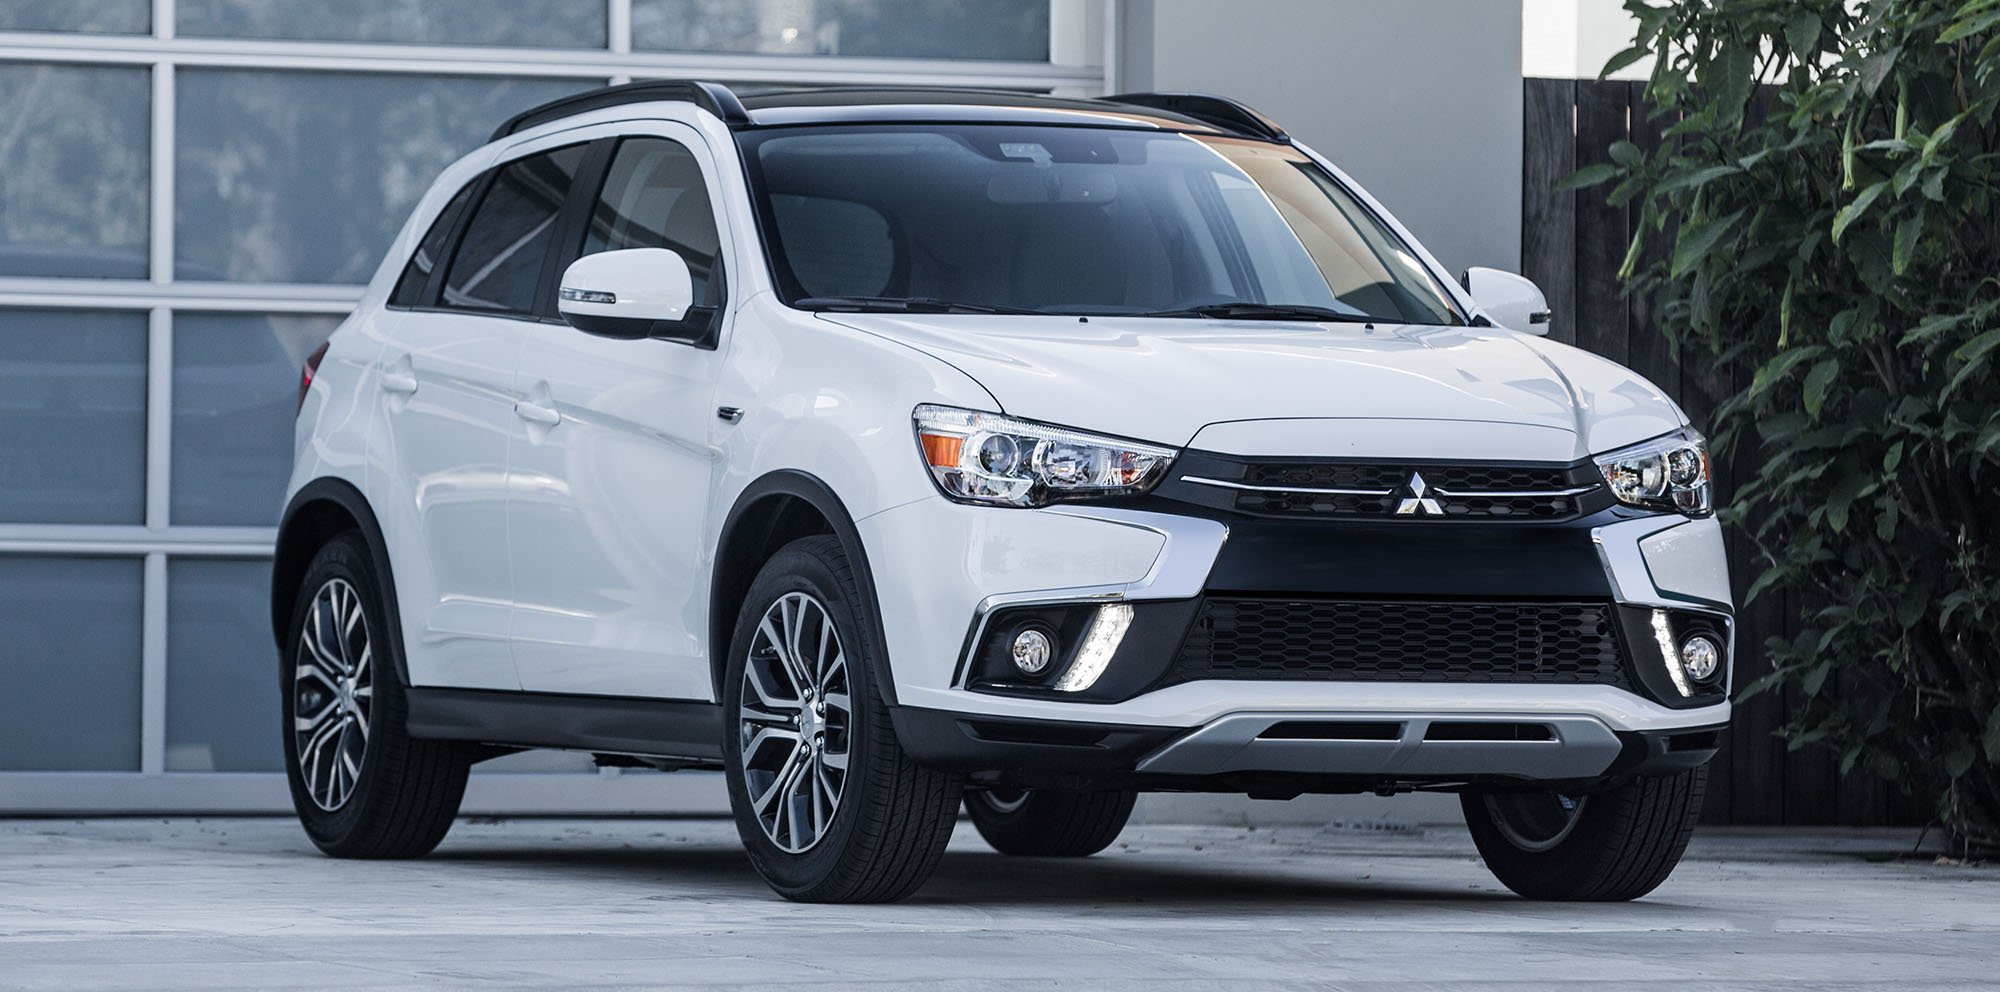 2018 mitsubishi asx update revealed in the usa photos 1